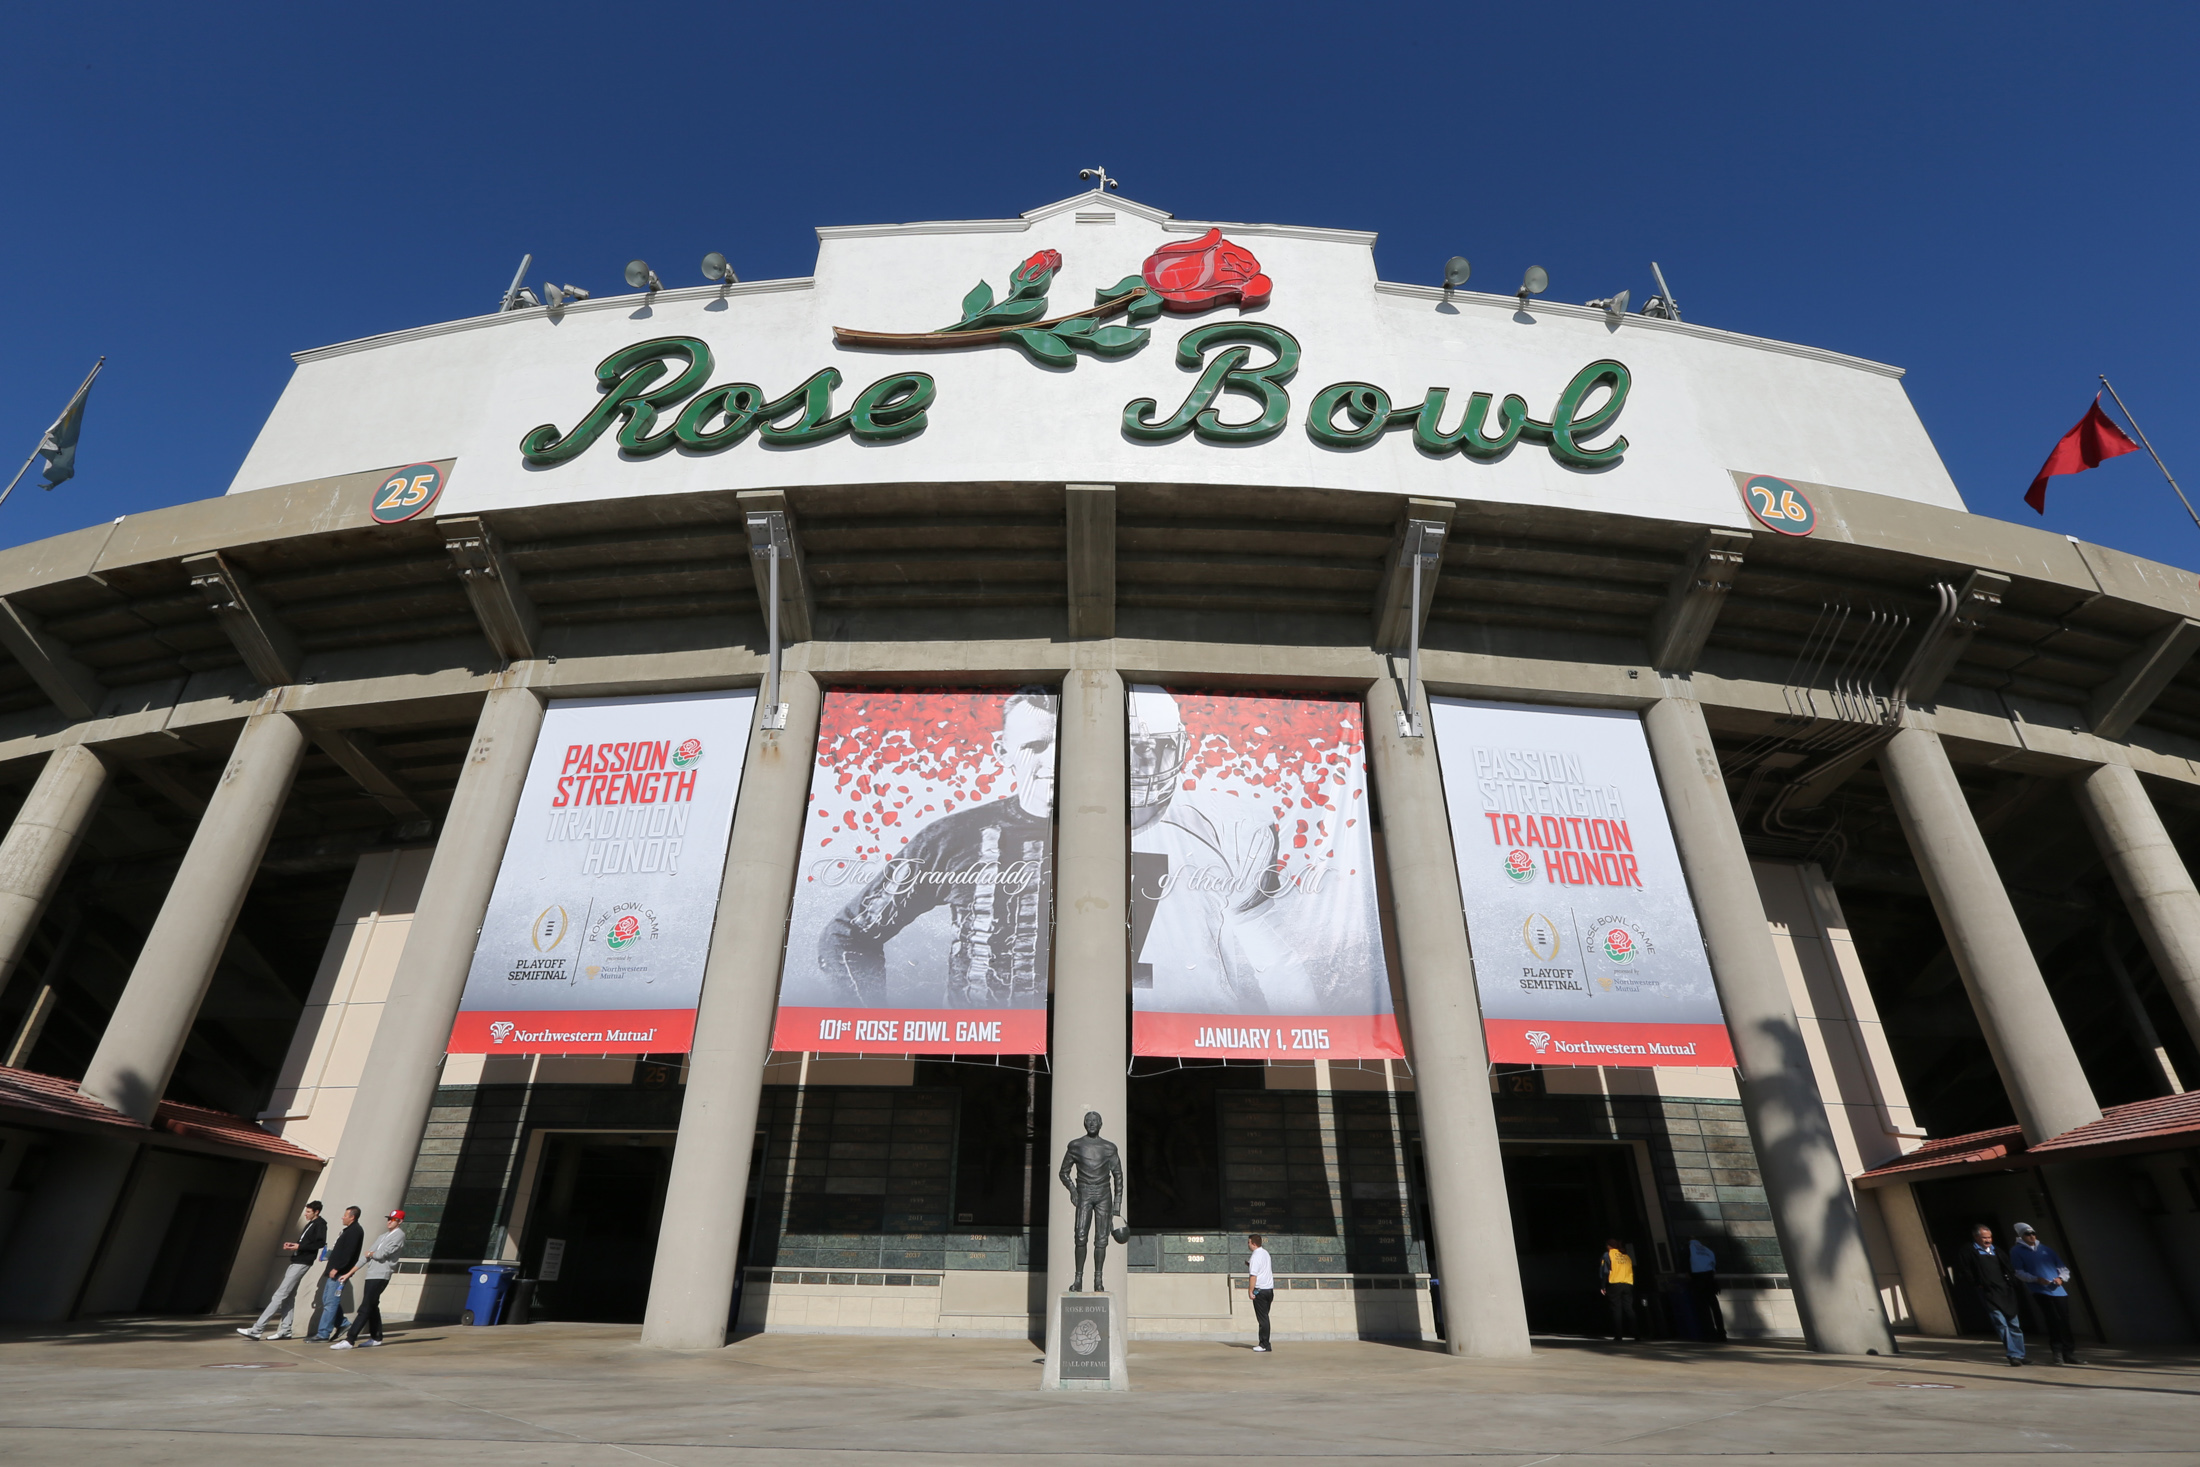 Florida State vs Oregon Ducks at the Rose Bowl in College Football Playoff - Rose Bowl